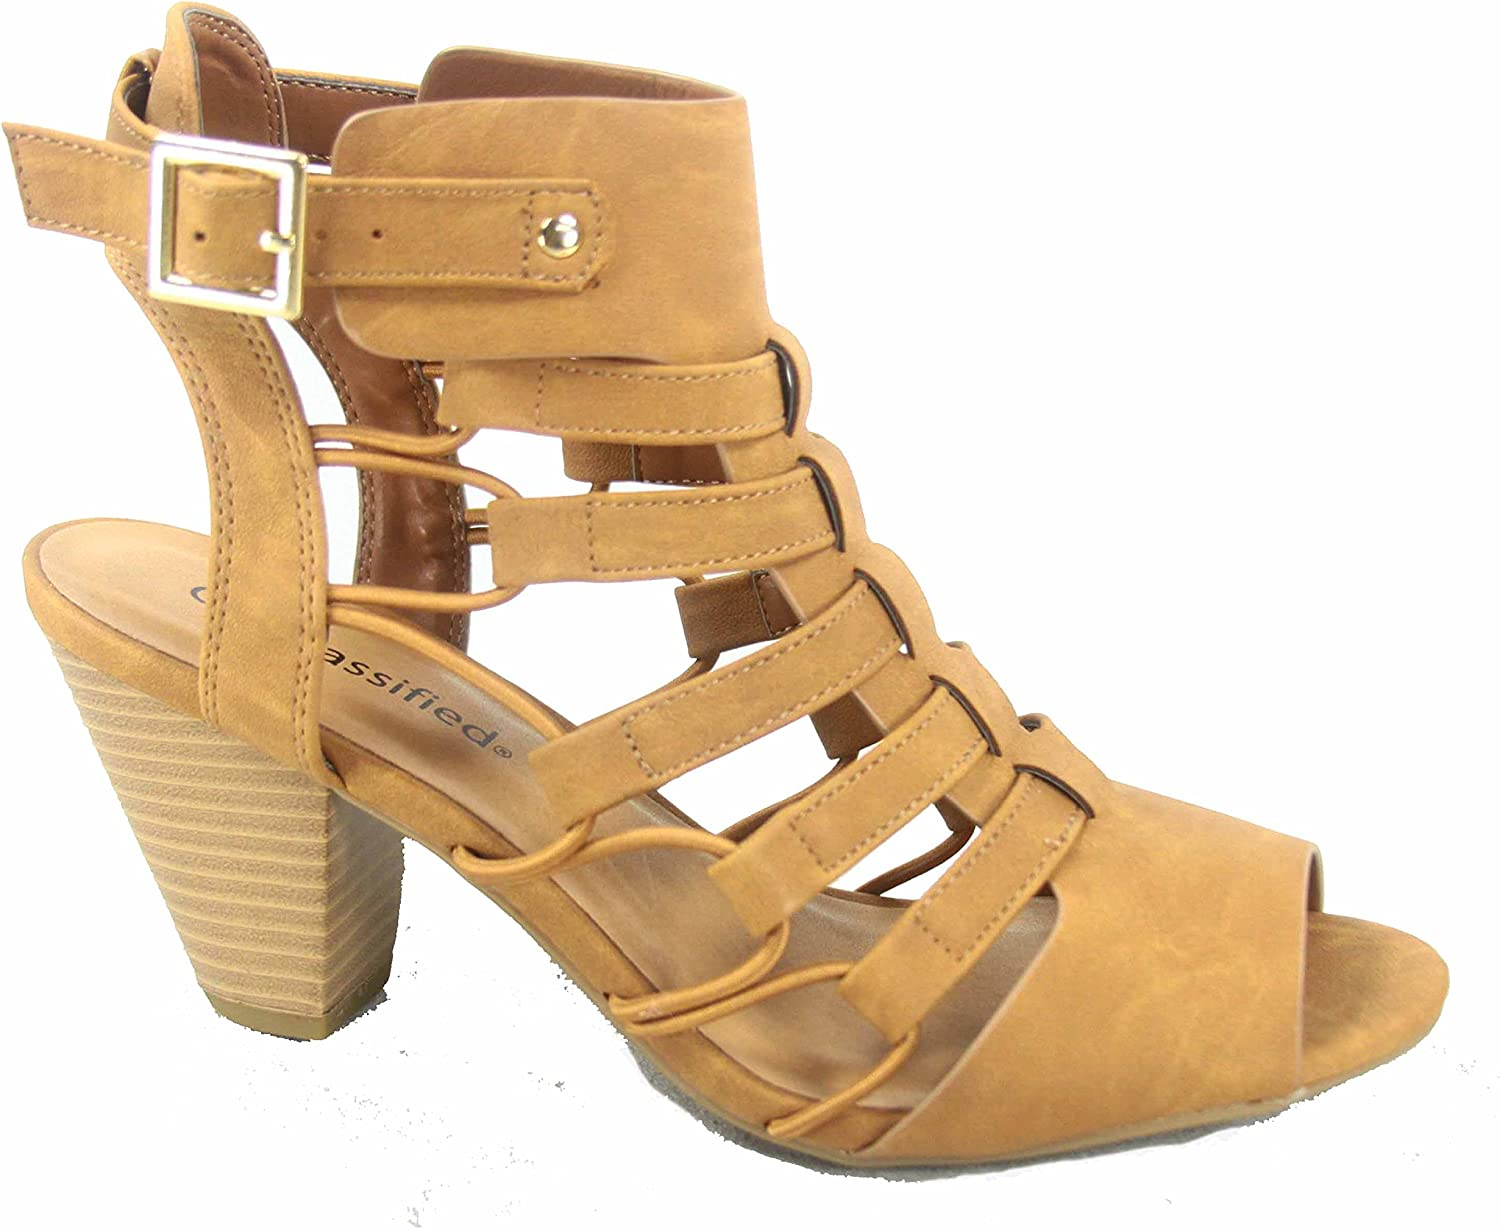 Delicious Awesome-s Women's Fashion Open Toe Strappy Gladiator Heel Low Wedge Sandal shoes